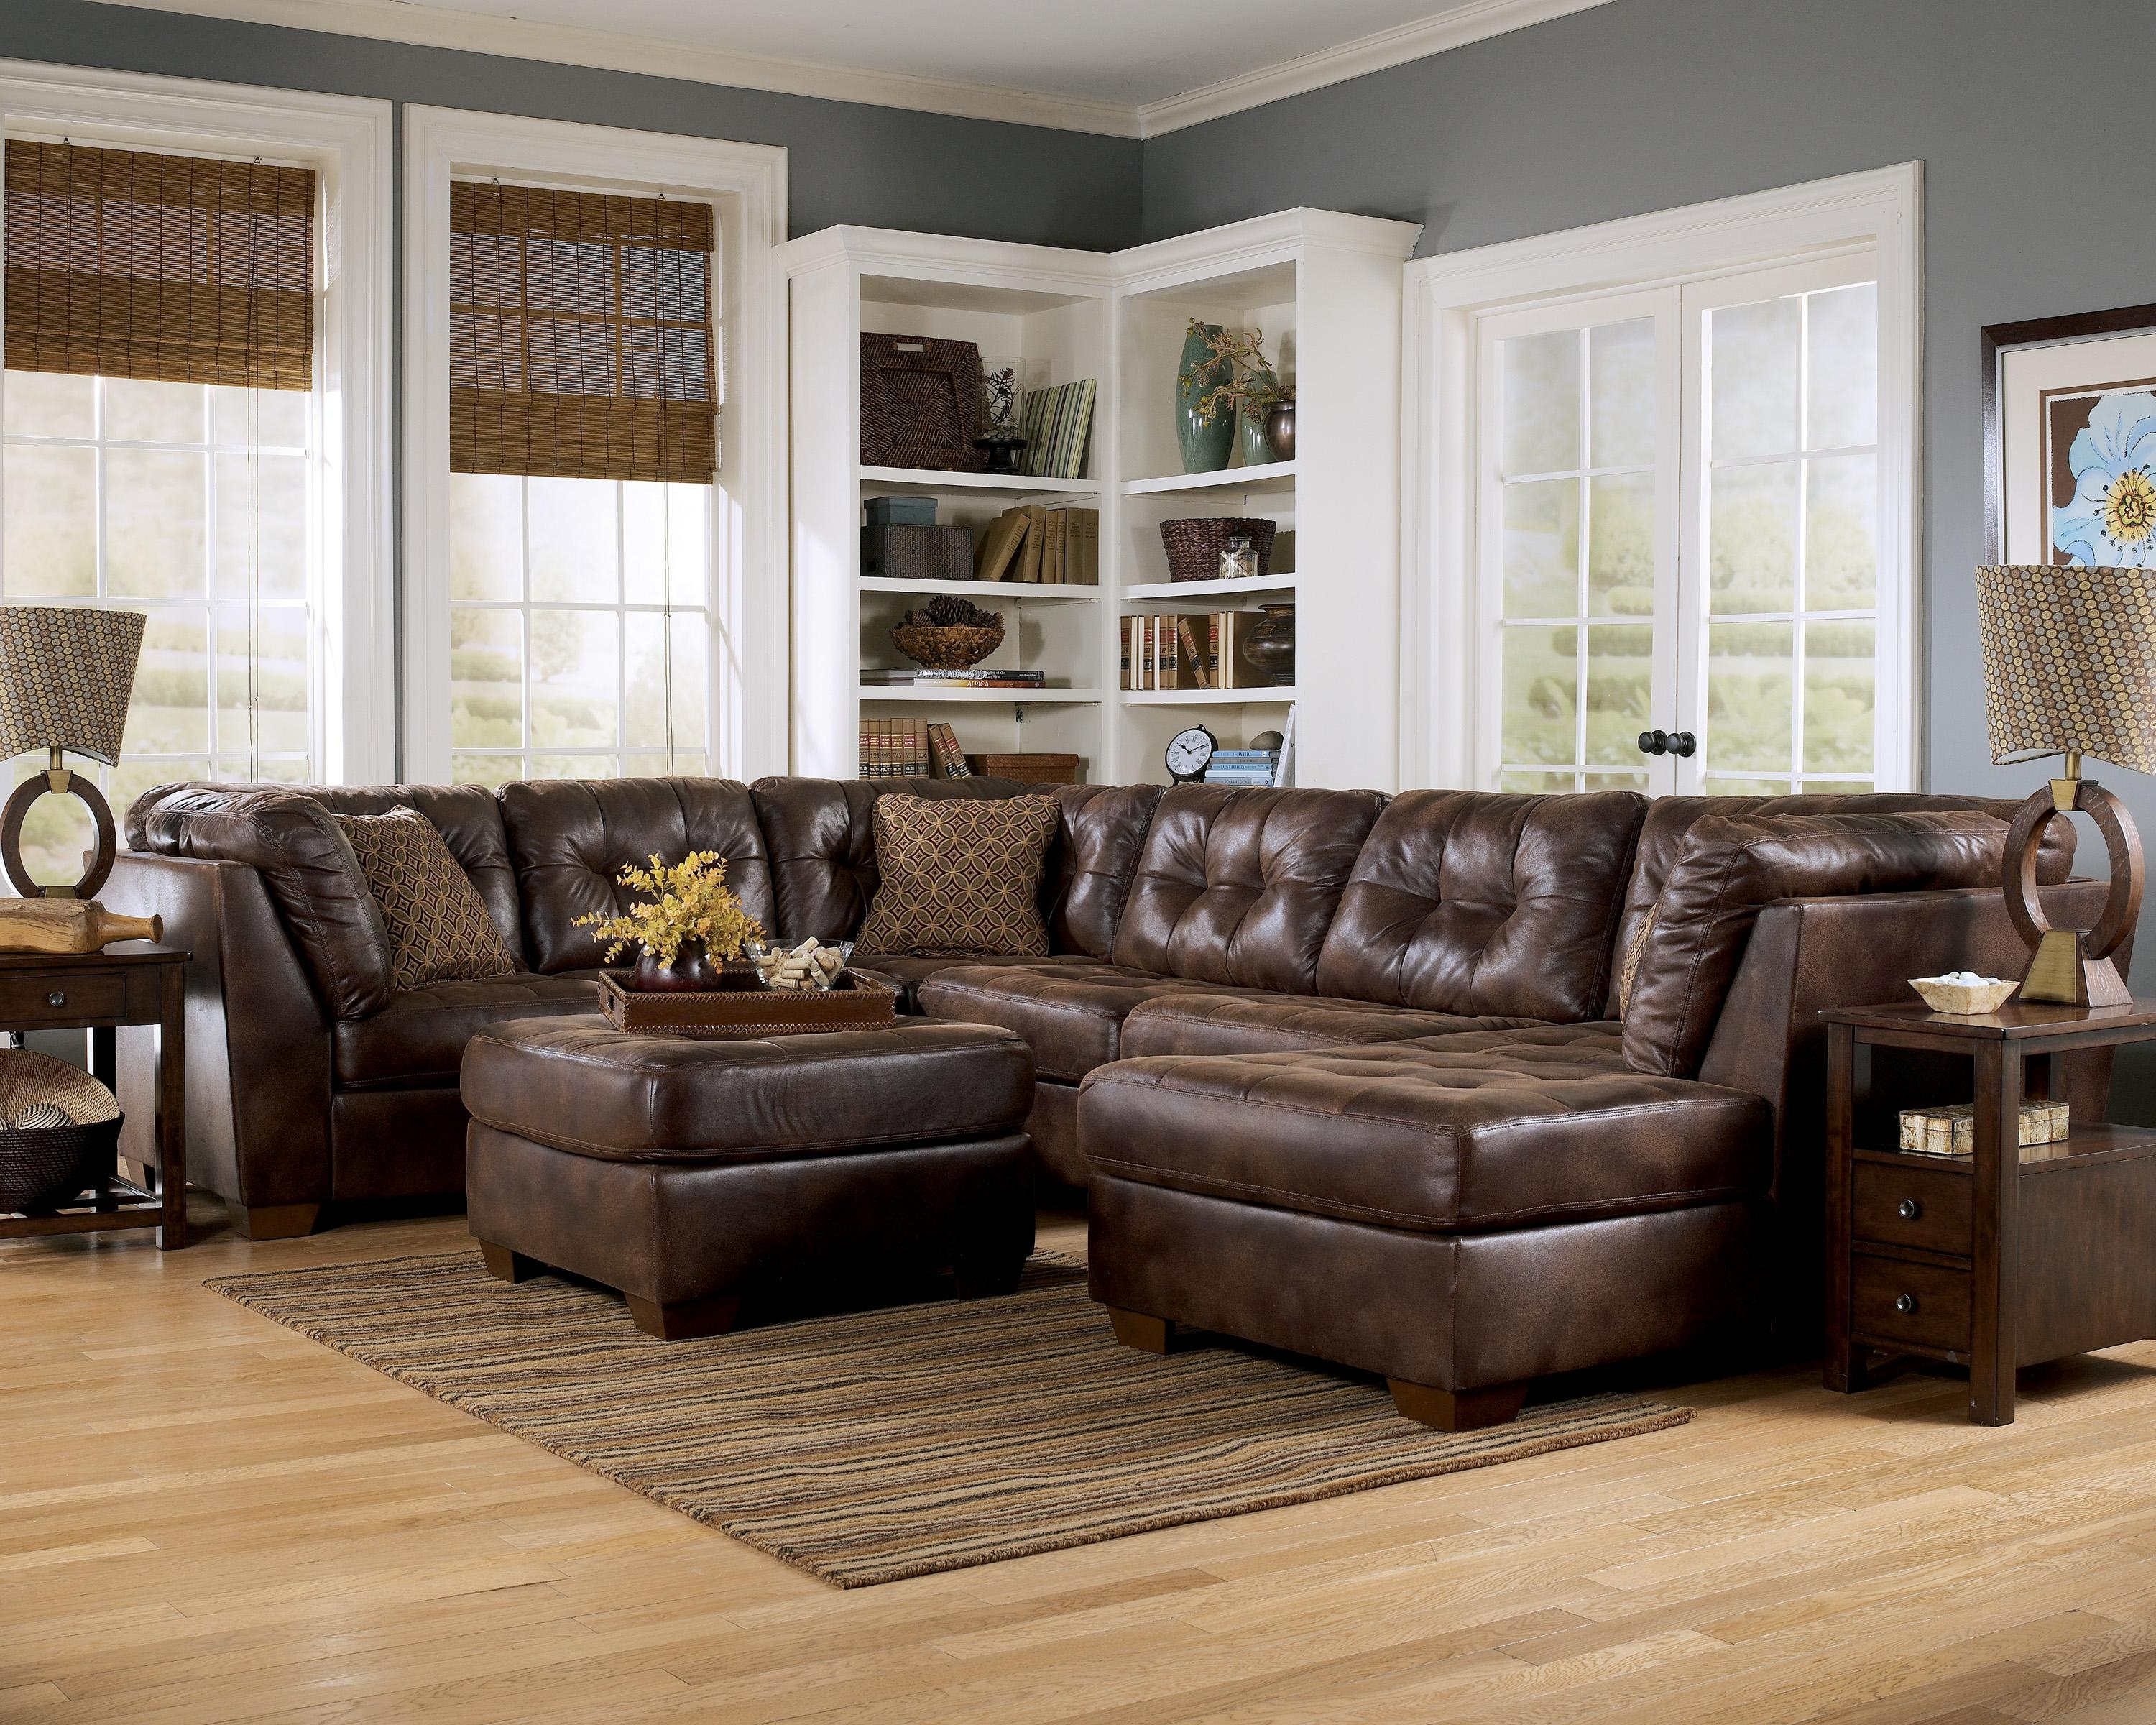 Best Faux Leather Sectional Sofa Ashley 19 For Your Media Sofa Pertaining To Media Sofa Sectionals (Image 2 of 20)